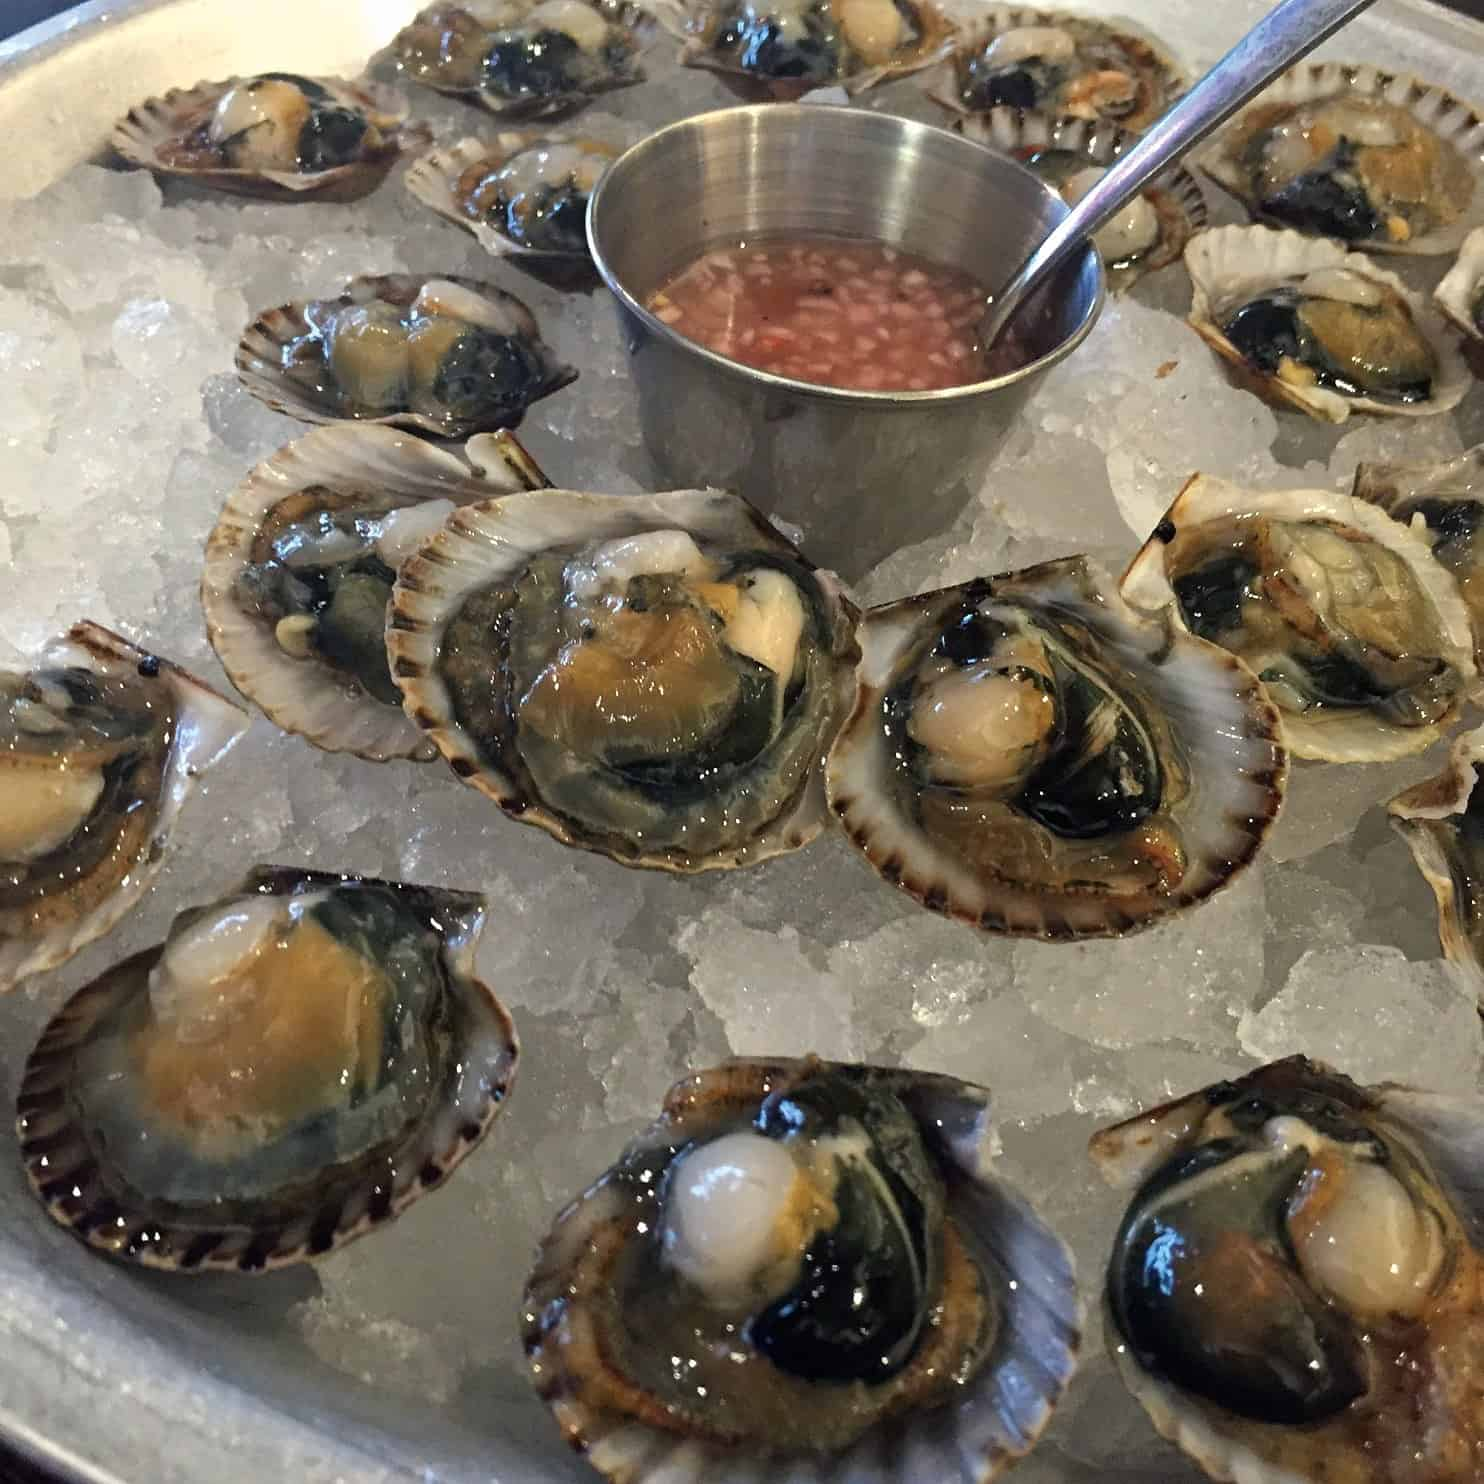 Photo by Rappahannock Oyster Co.